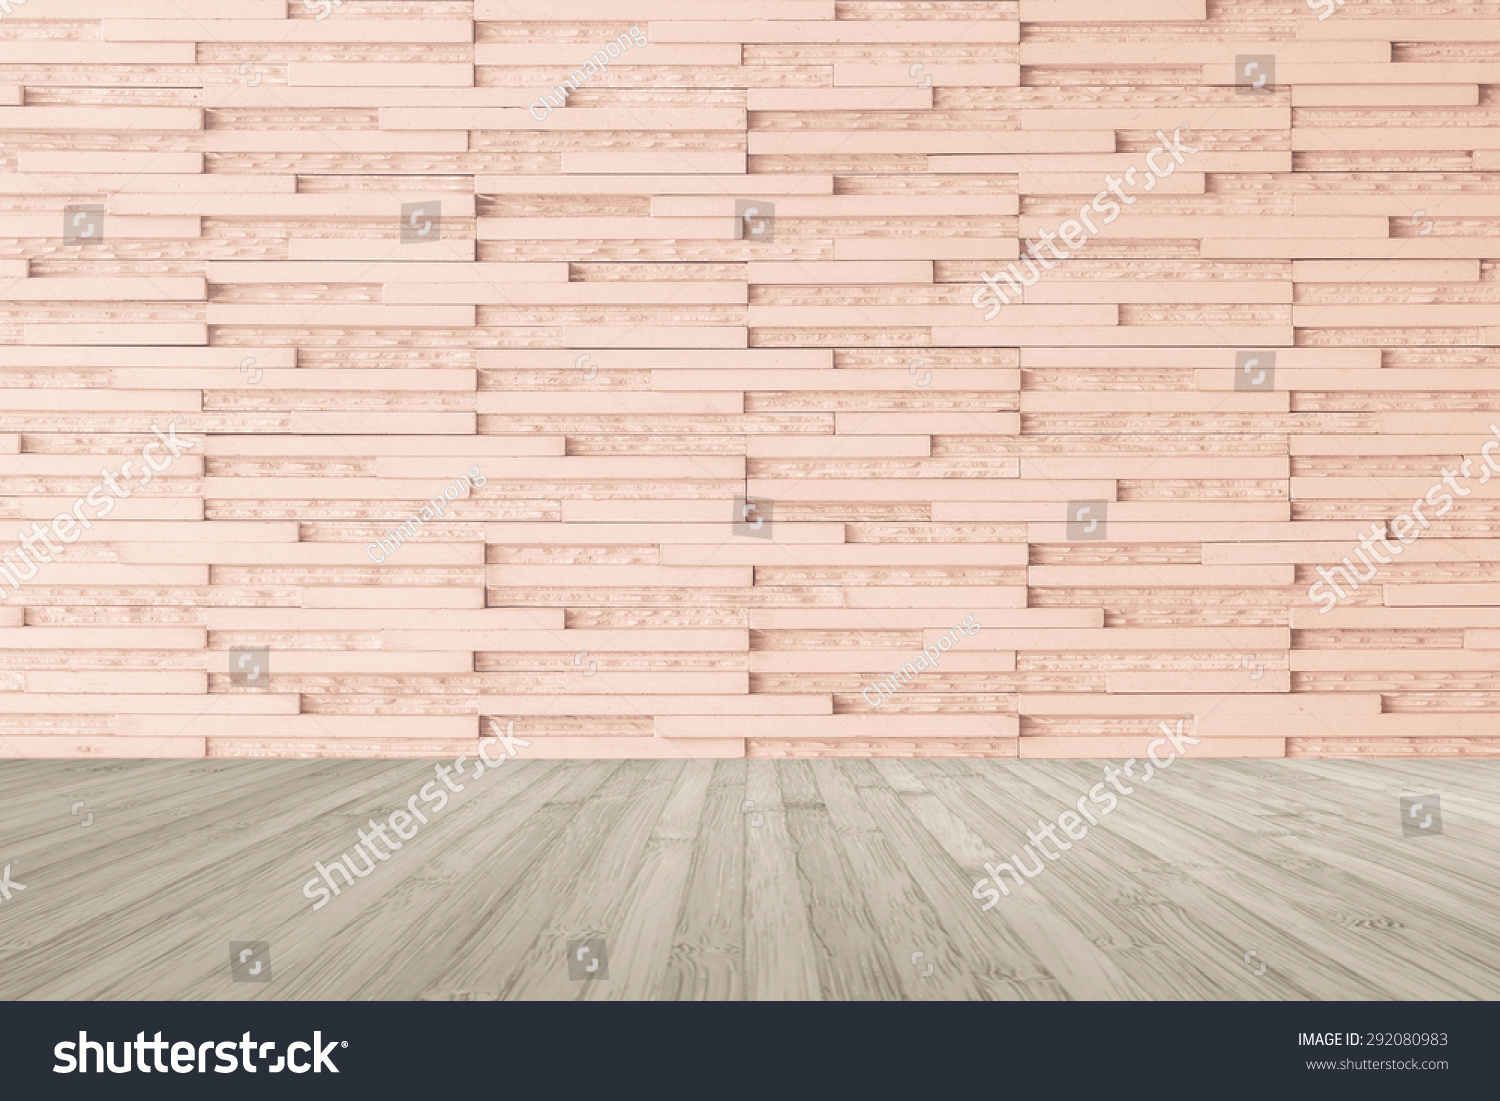 Modern Marble Tile Wall In Light Red Brown Color With Wooden Floor Sepia Grey